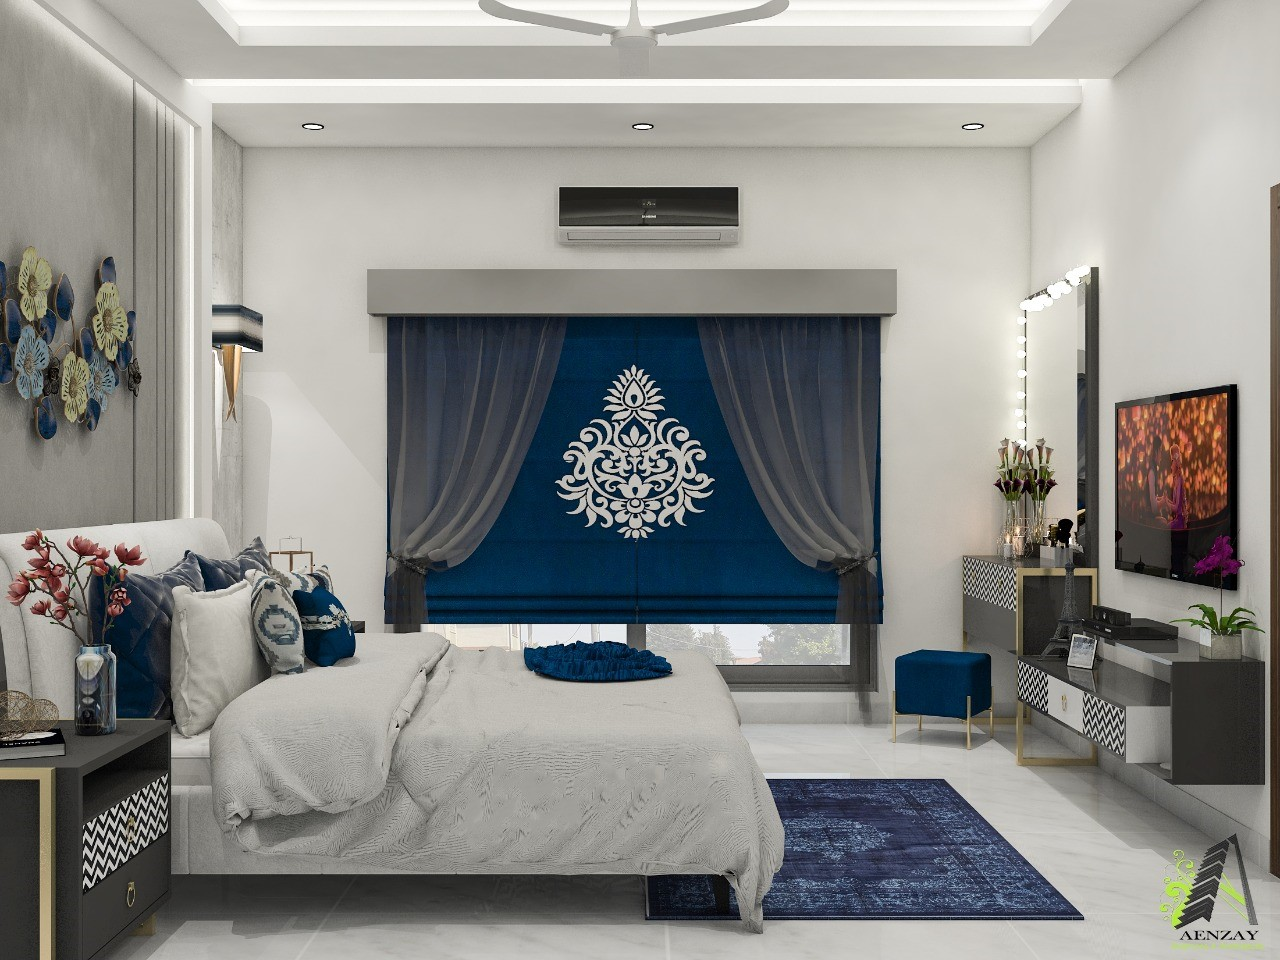 Home renovation services in DHA Lahore